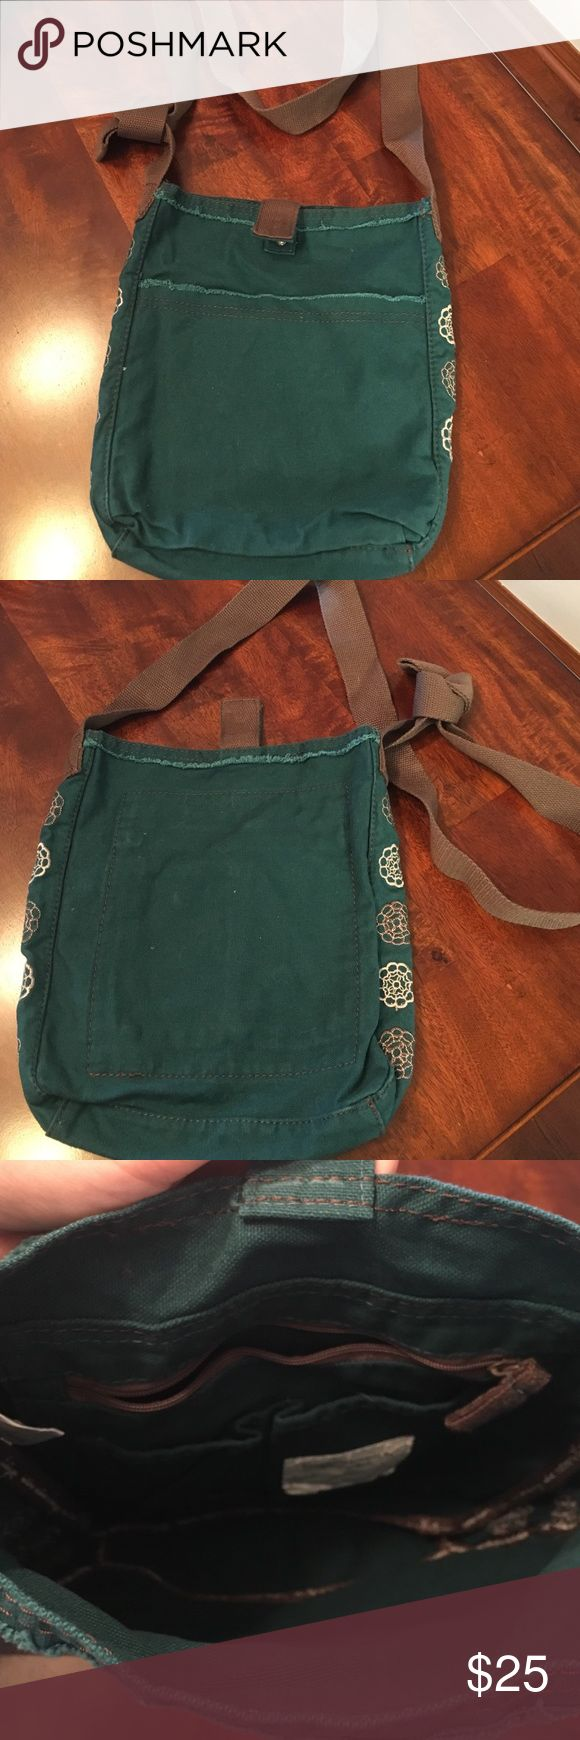 Forever 31 Retro Metro Embroidered Crossbody Bag Like New. Crossbody bag with a snap closure. One interior pocket with zipper, and 2 interior pockets without zipper. Large pocket on the front of the purse. Comes from a smoke free home. Thirty-One Bags Crossbody Bags